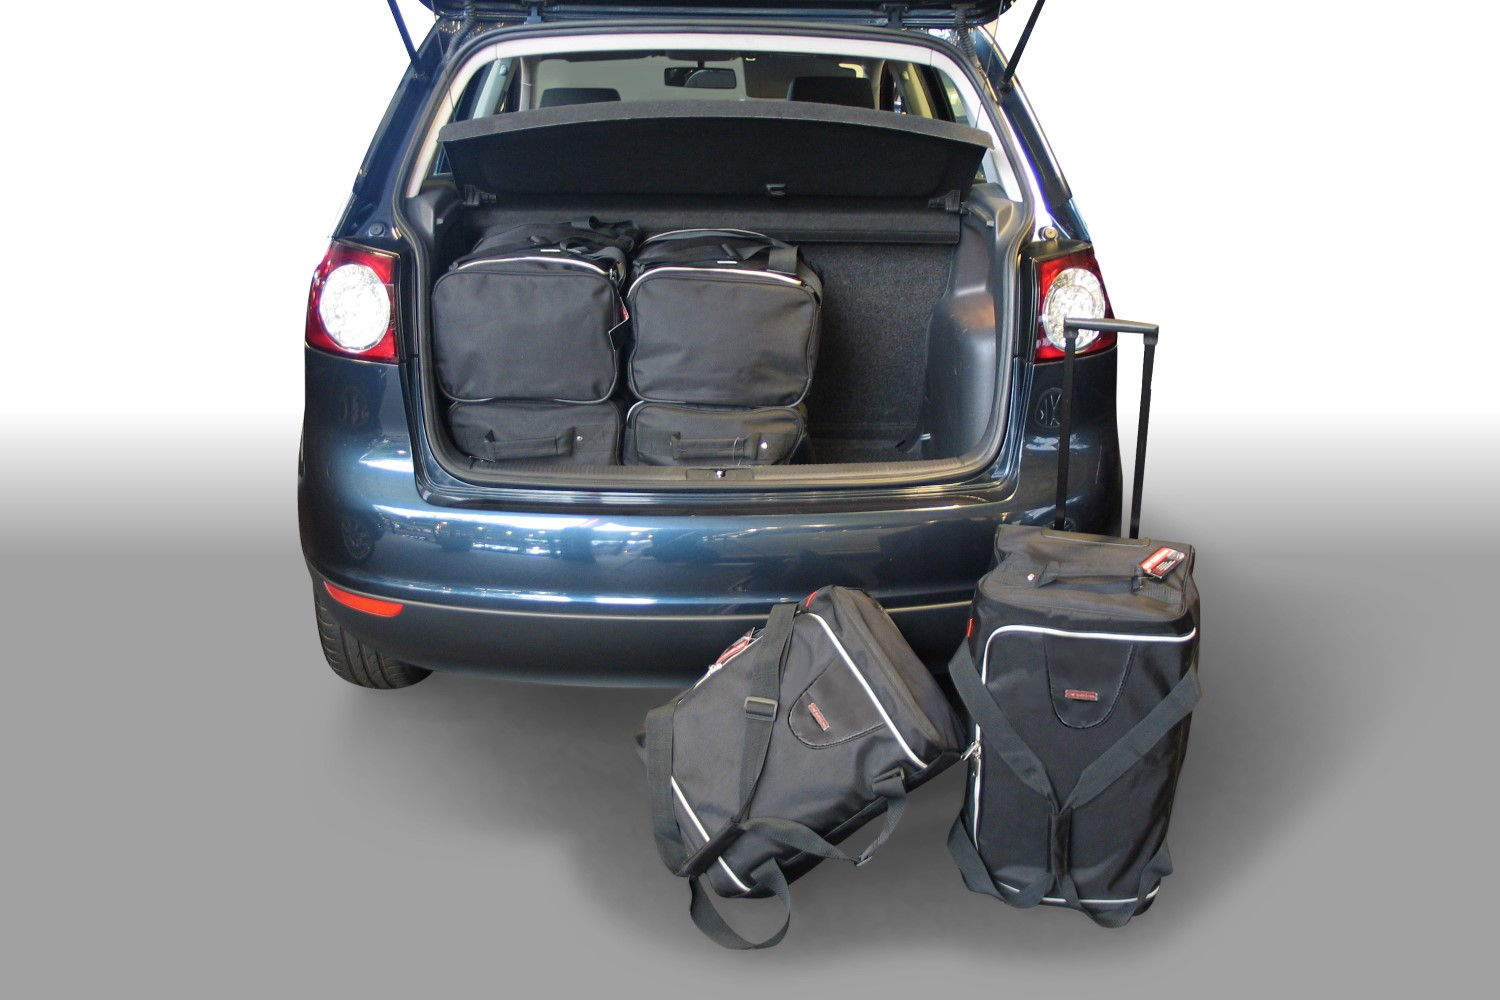 Volkswagen Golf Plus (1KP) 2004-2014 5 door Car-Bags.com travel bag set (1)